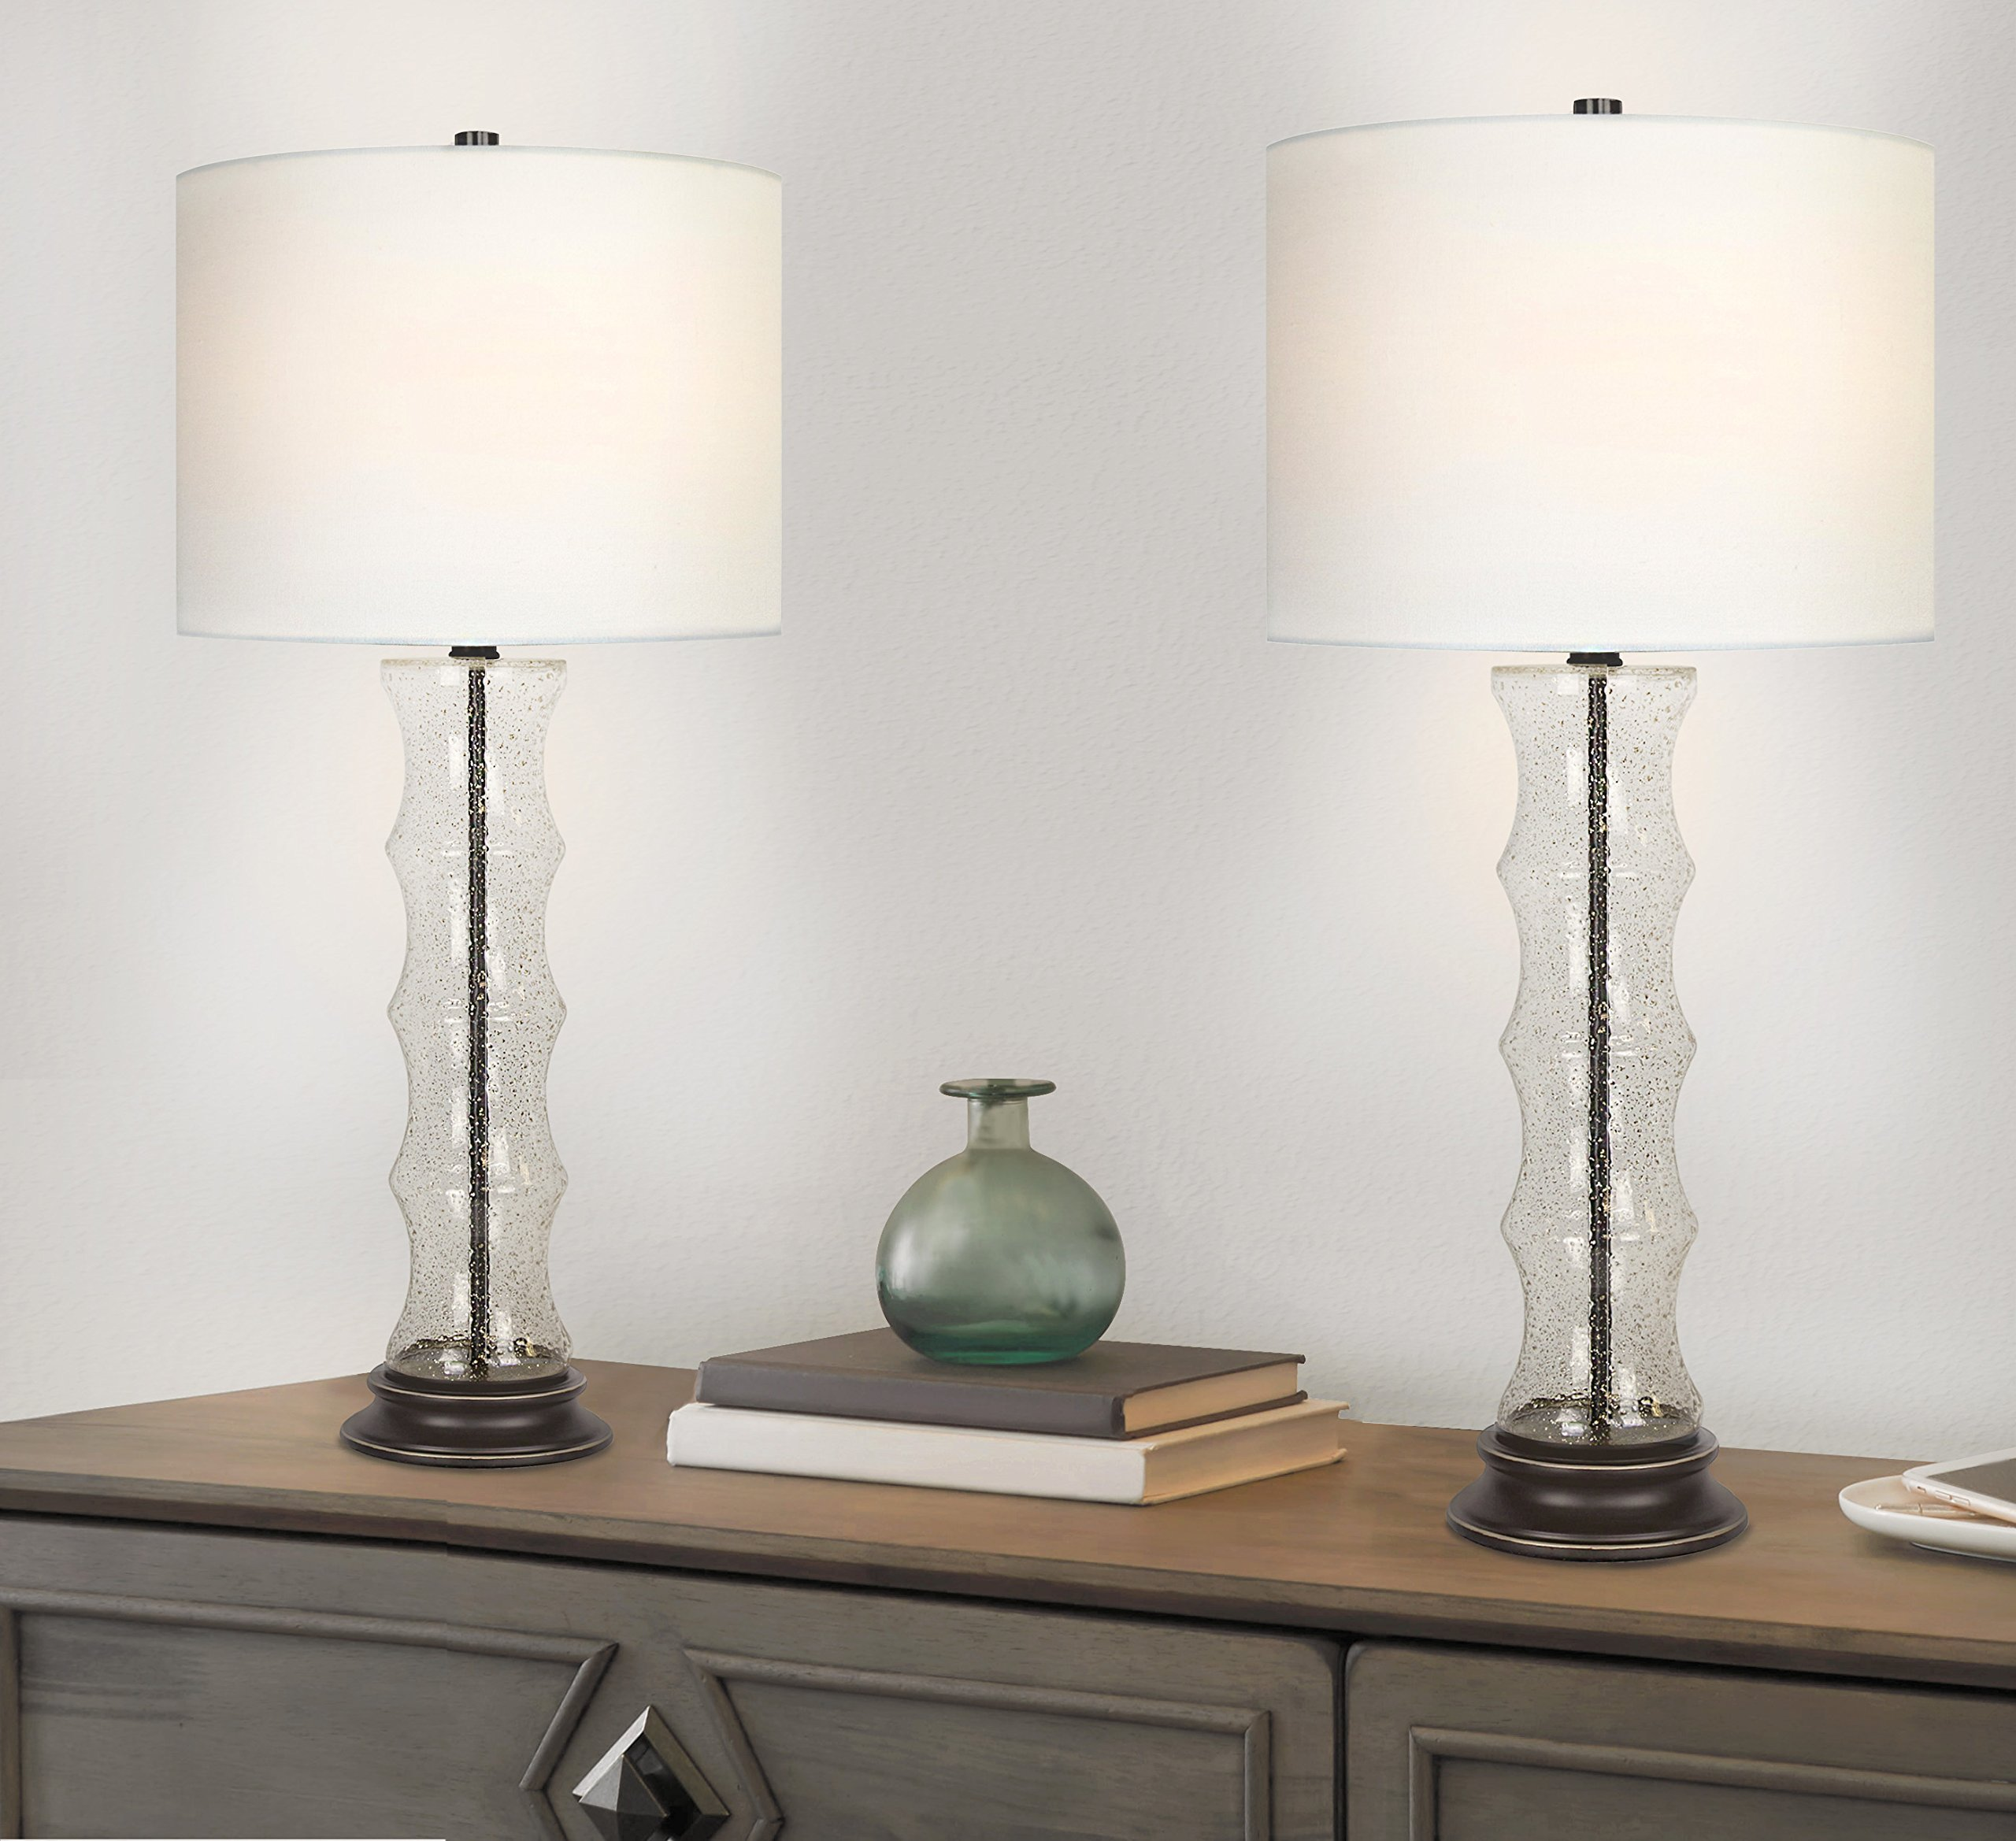 Grandview Gallery 29'' Desert Glass Lamp Set ft. Textured Glass Embedded with Gold Sand, Oil-Rubbed Bronze Details, and Off-White Linen Drum Shades - Perfect for Nightstands and End Tables (Set of 2) by Grandview Gallery (Image #4)